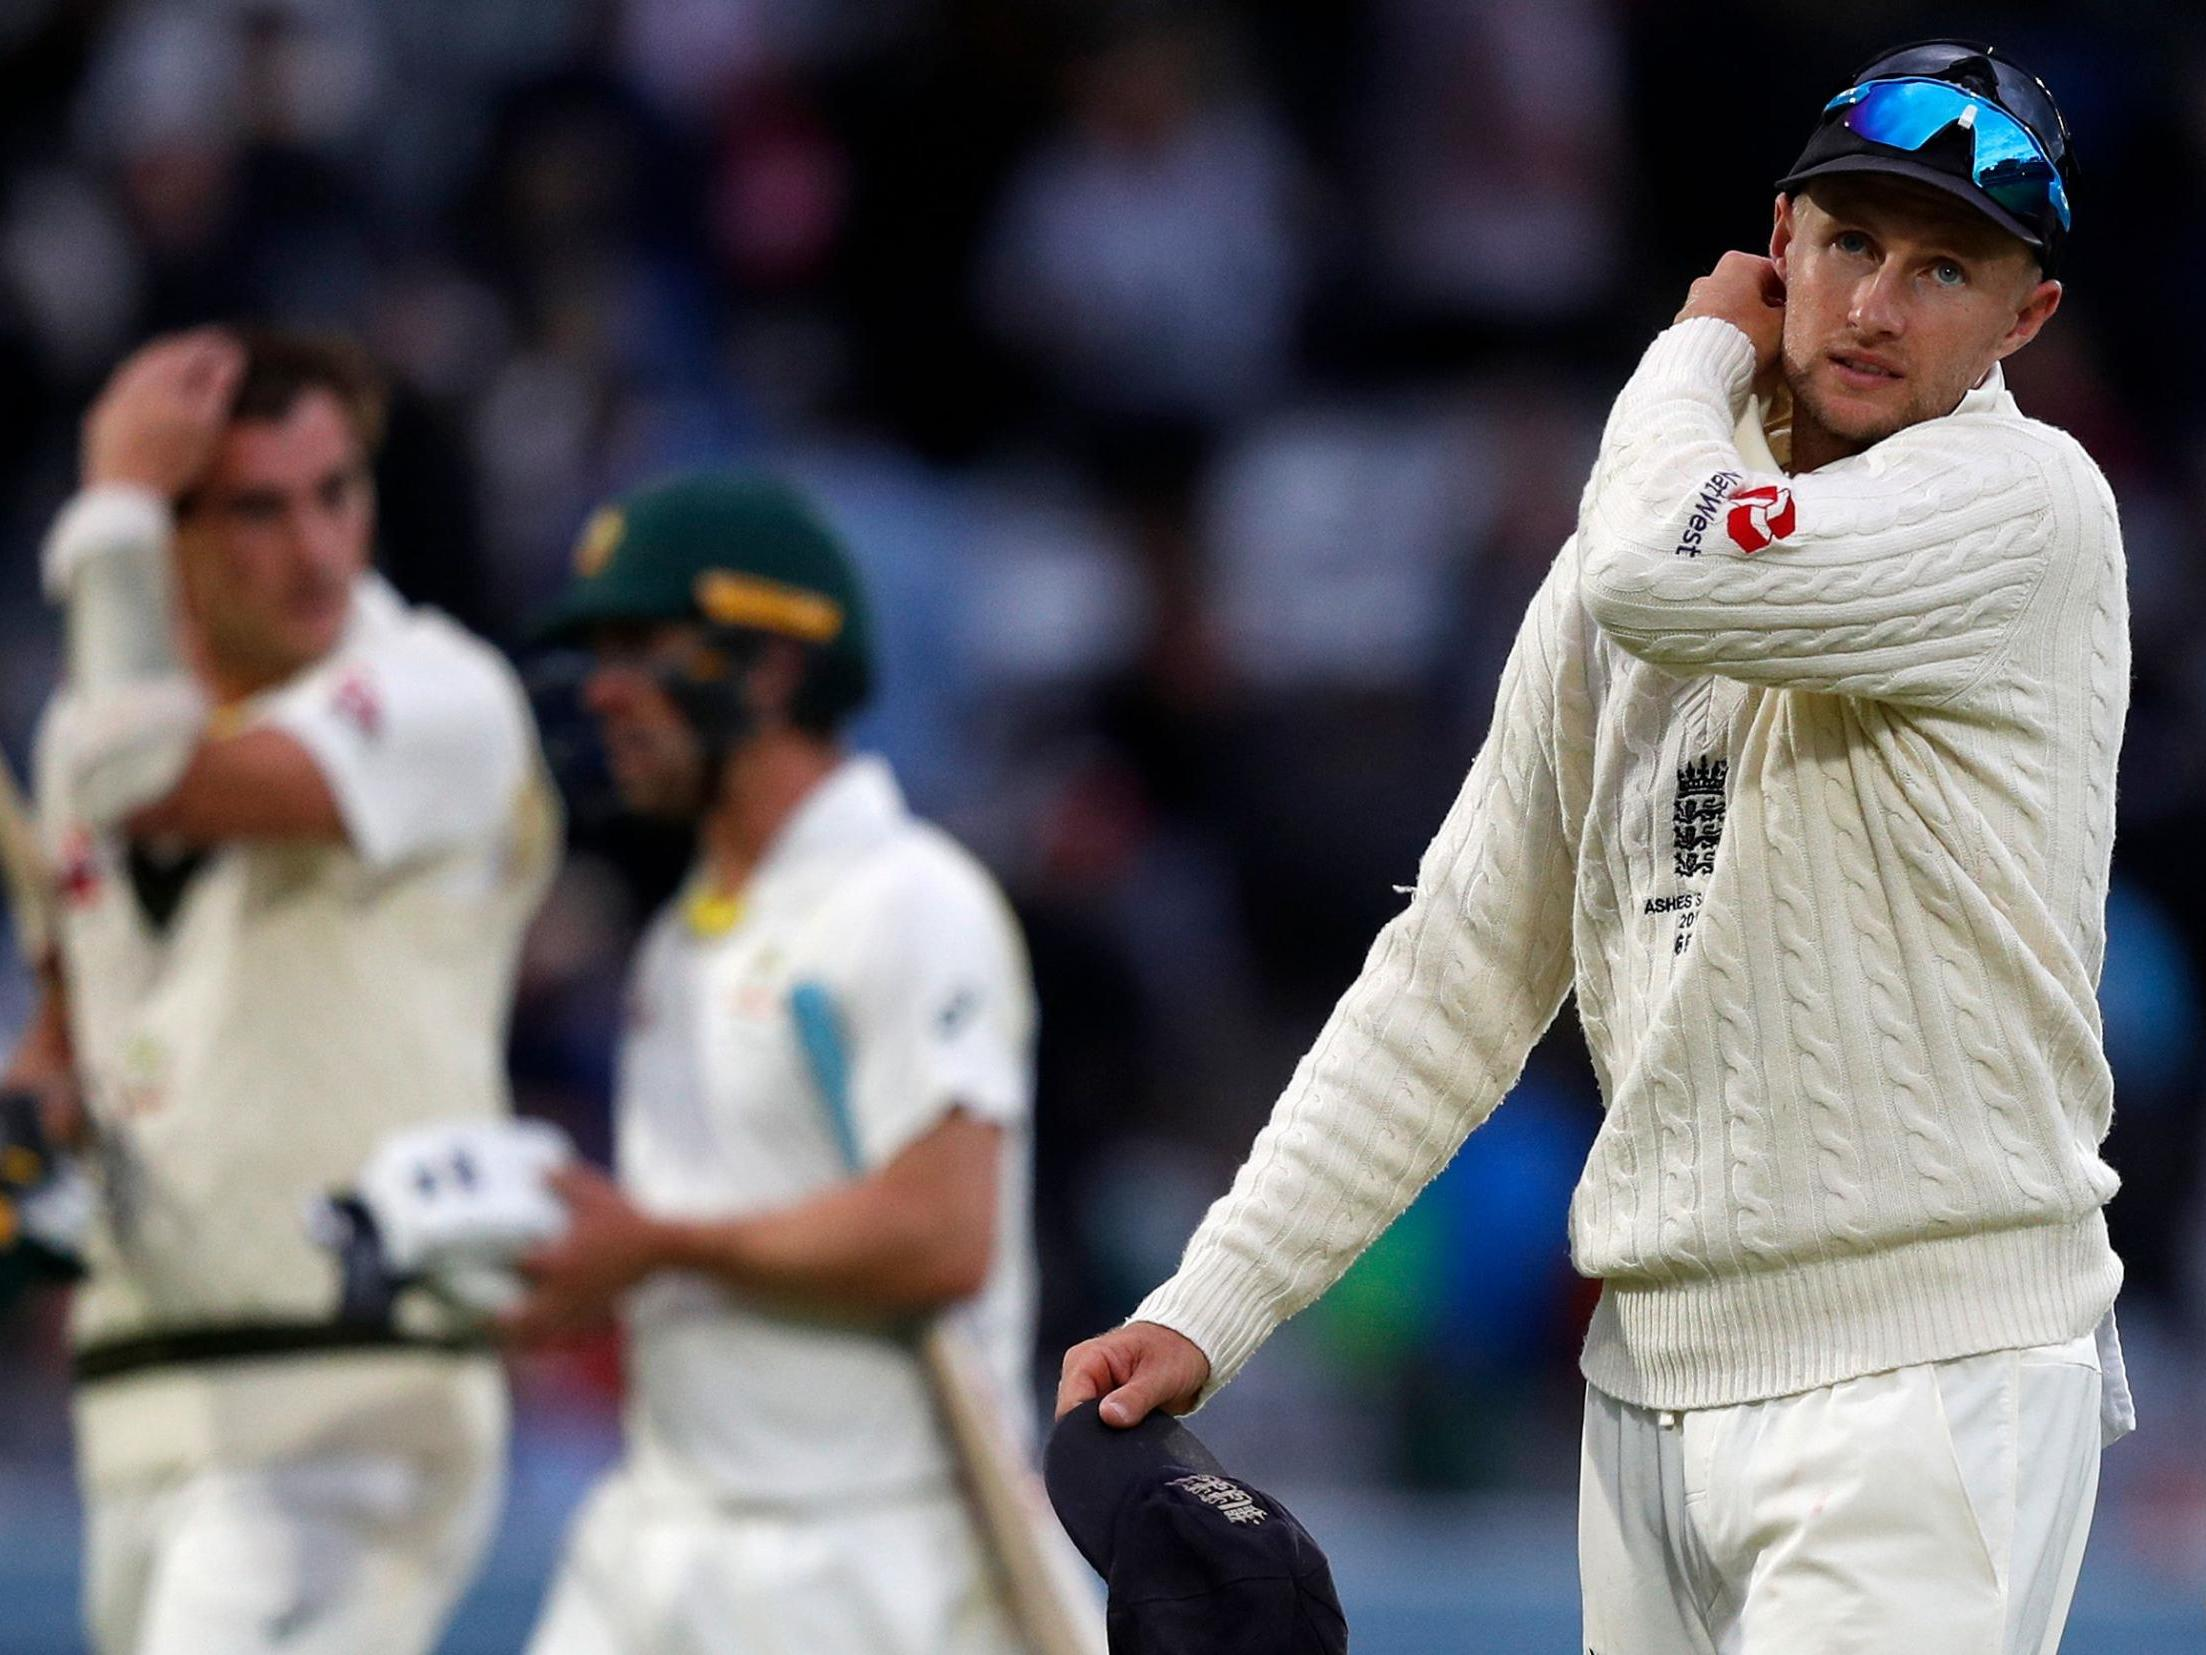 Ashes 2019: Australia resist England and cling on to draw at Lord's as series stirs to life